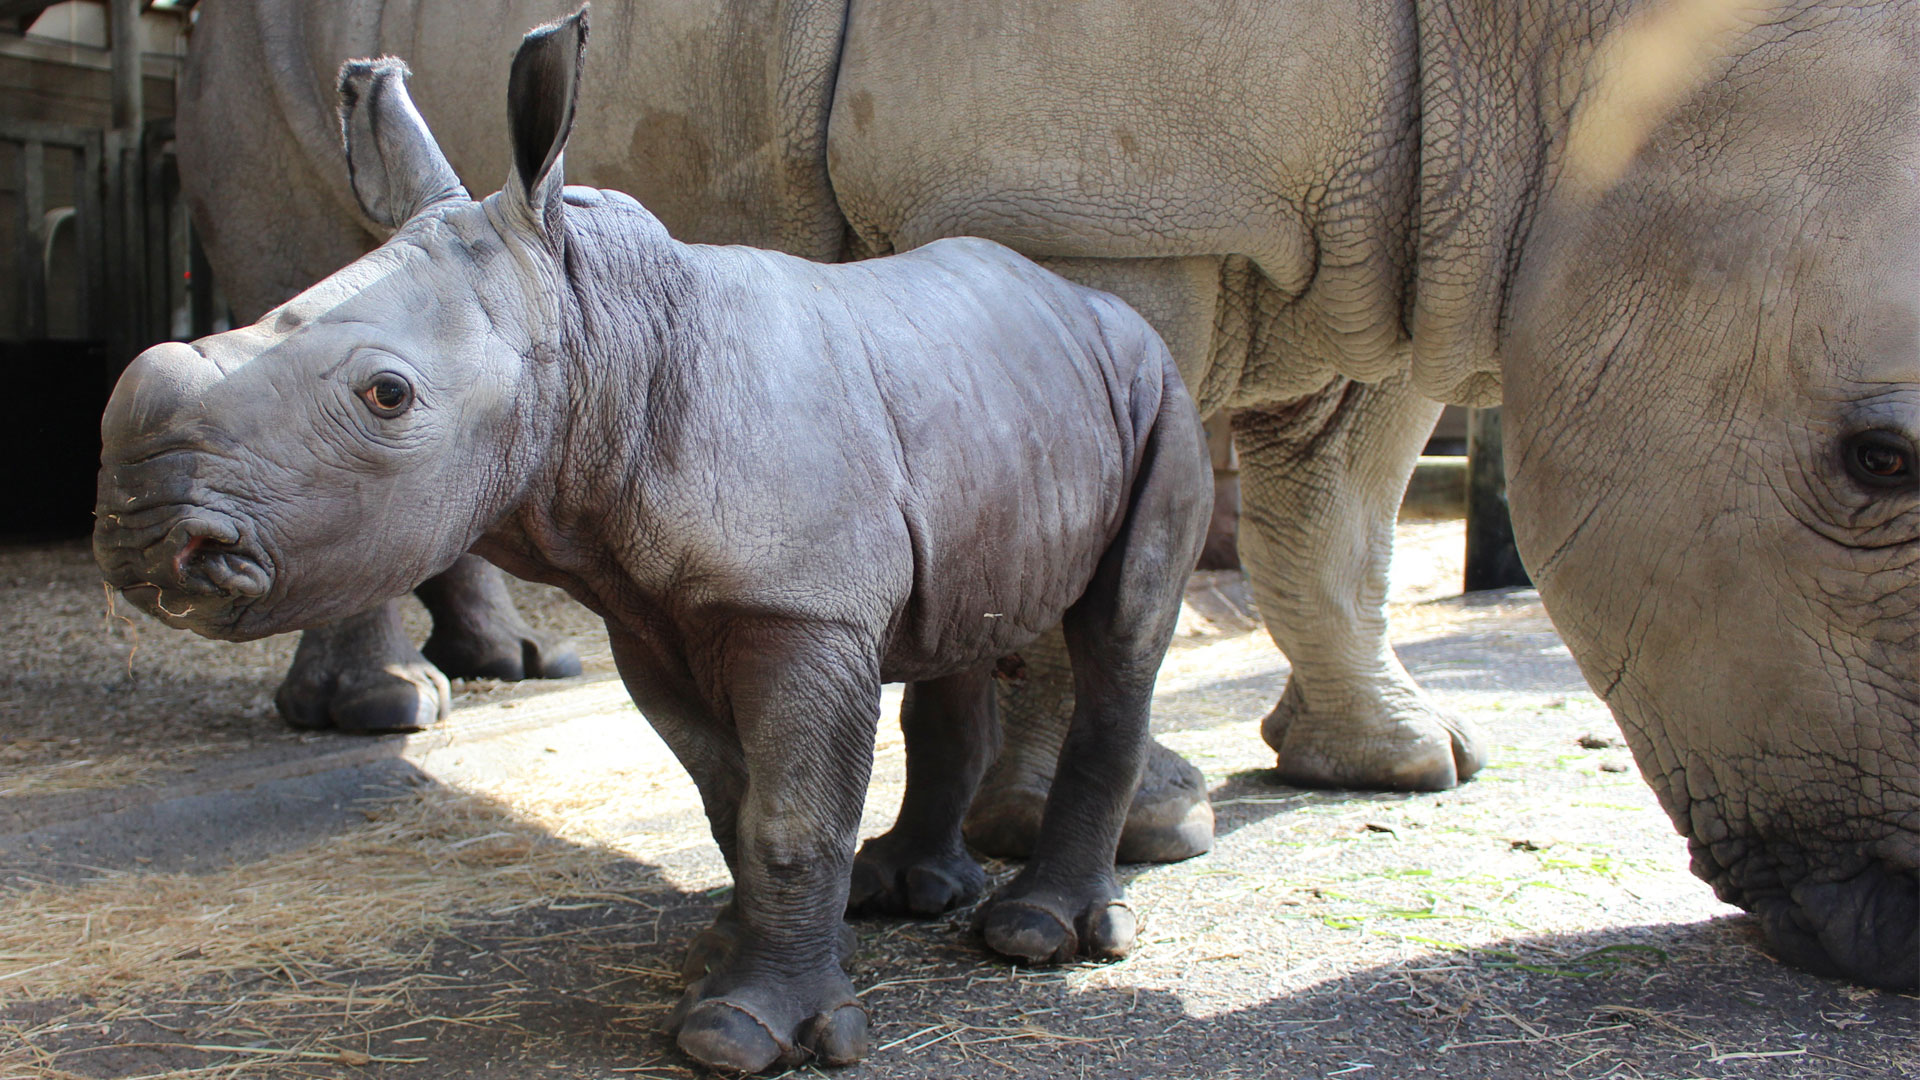 https://rfacdn.nz/zoo/assets/media/rhino-calf-gallery-3.jpg